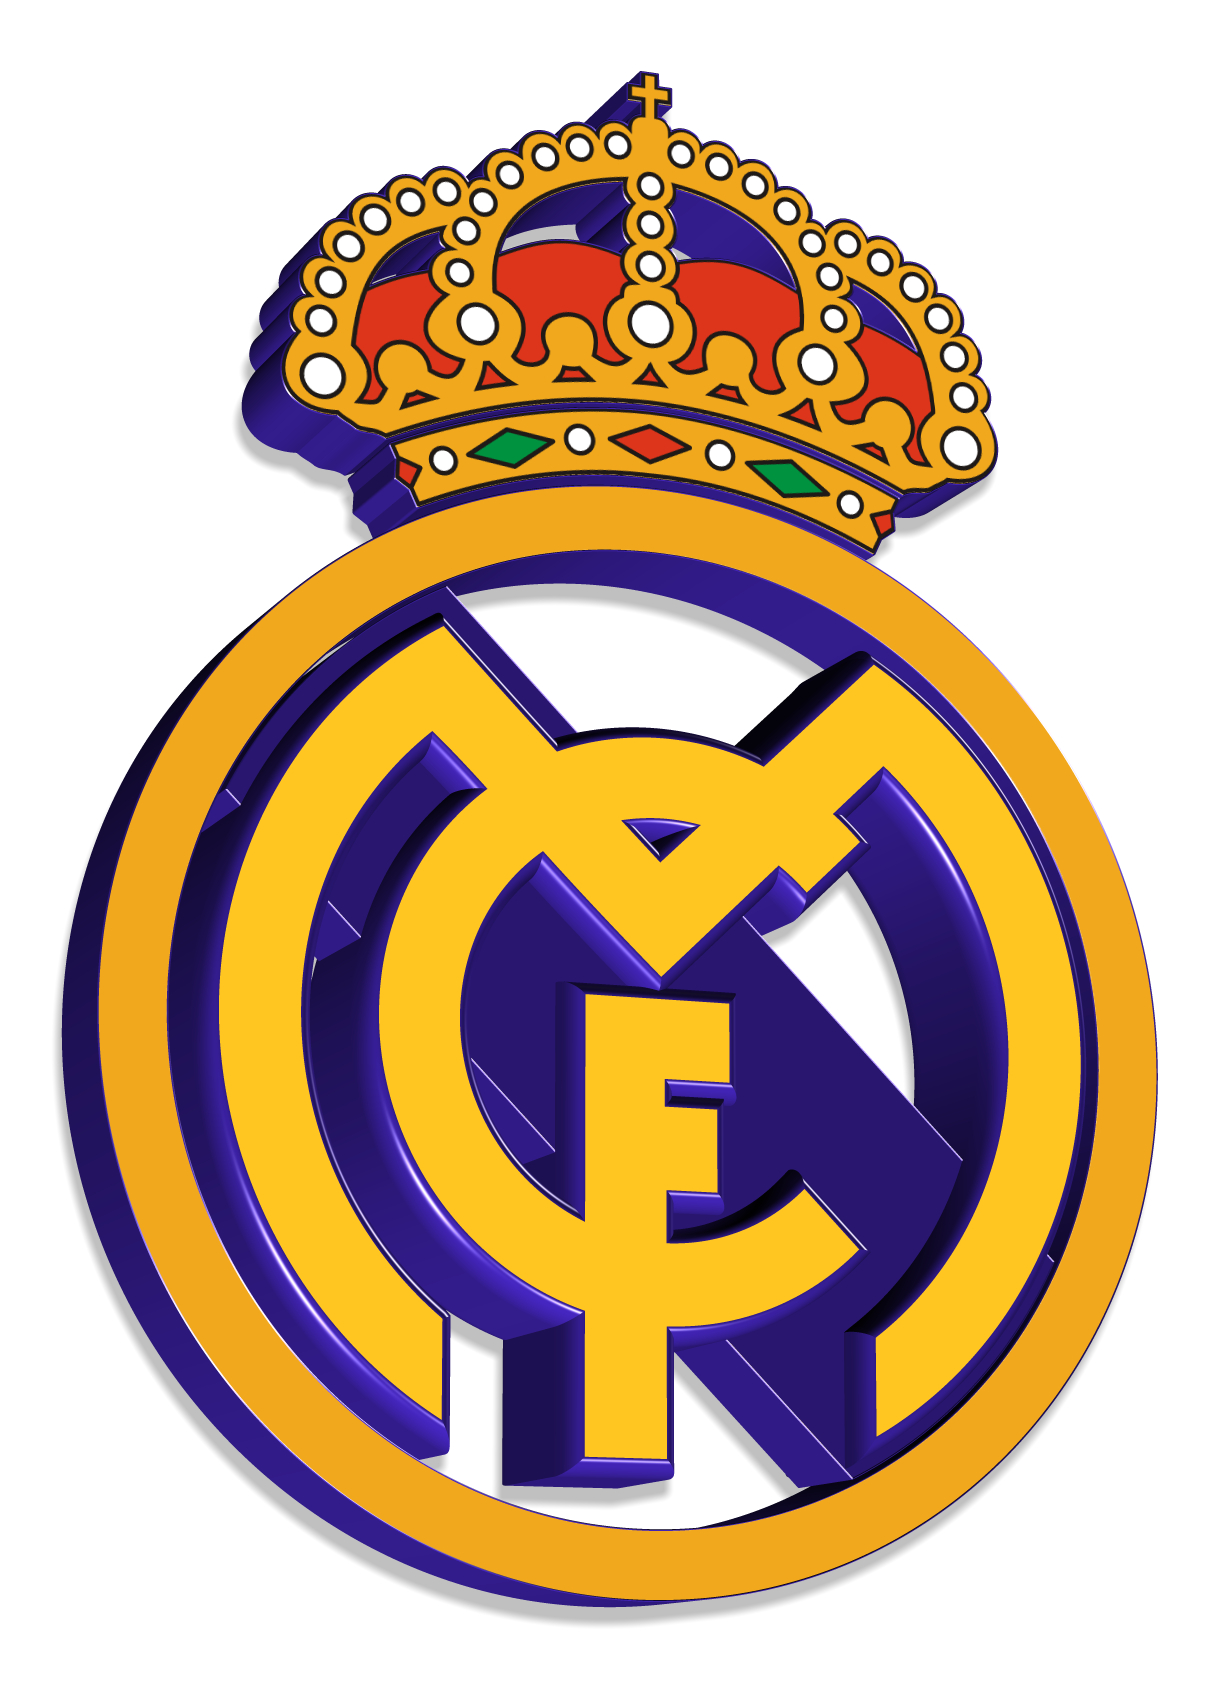 Real Madrid logo 3D Wallpaper